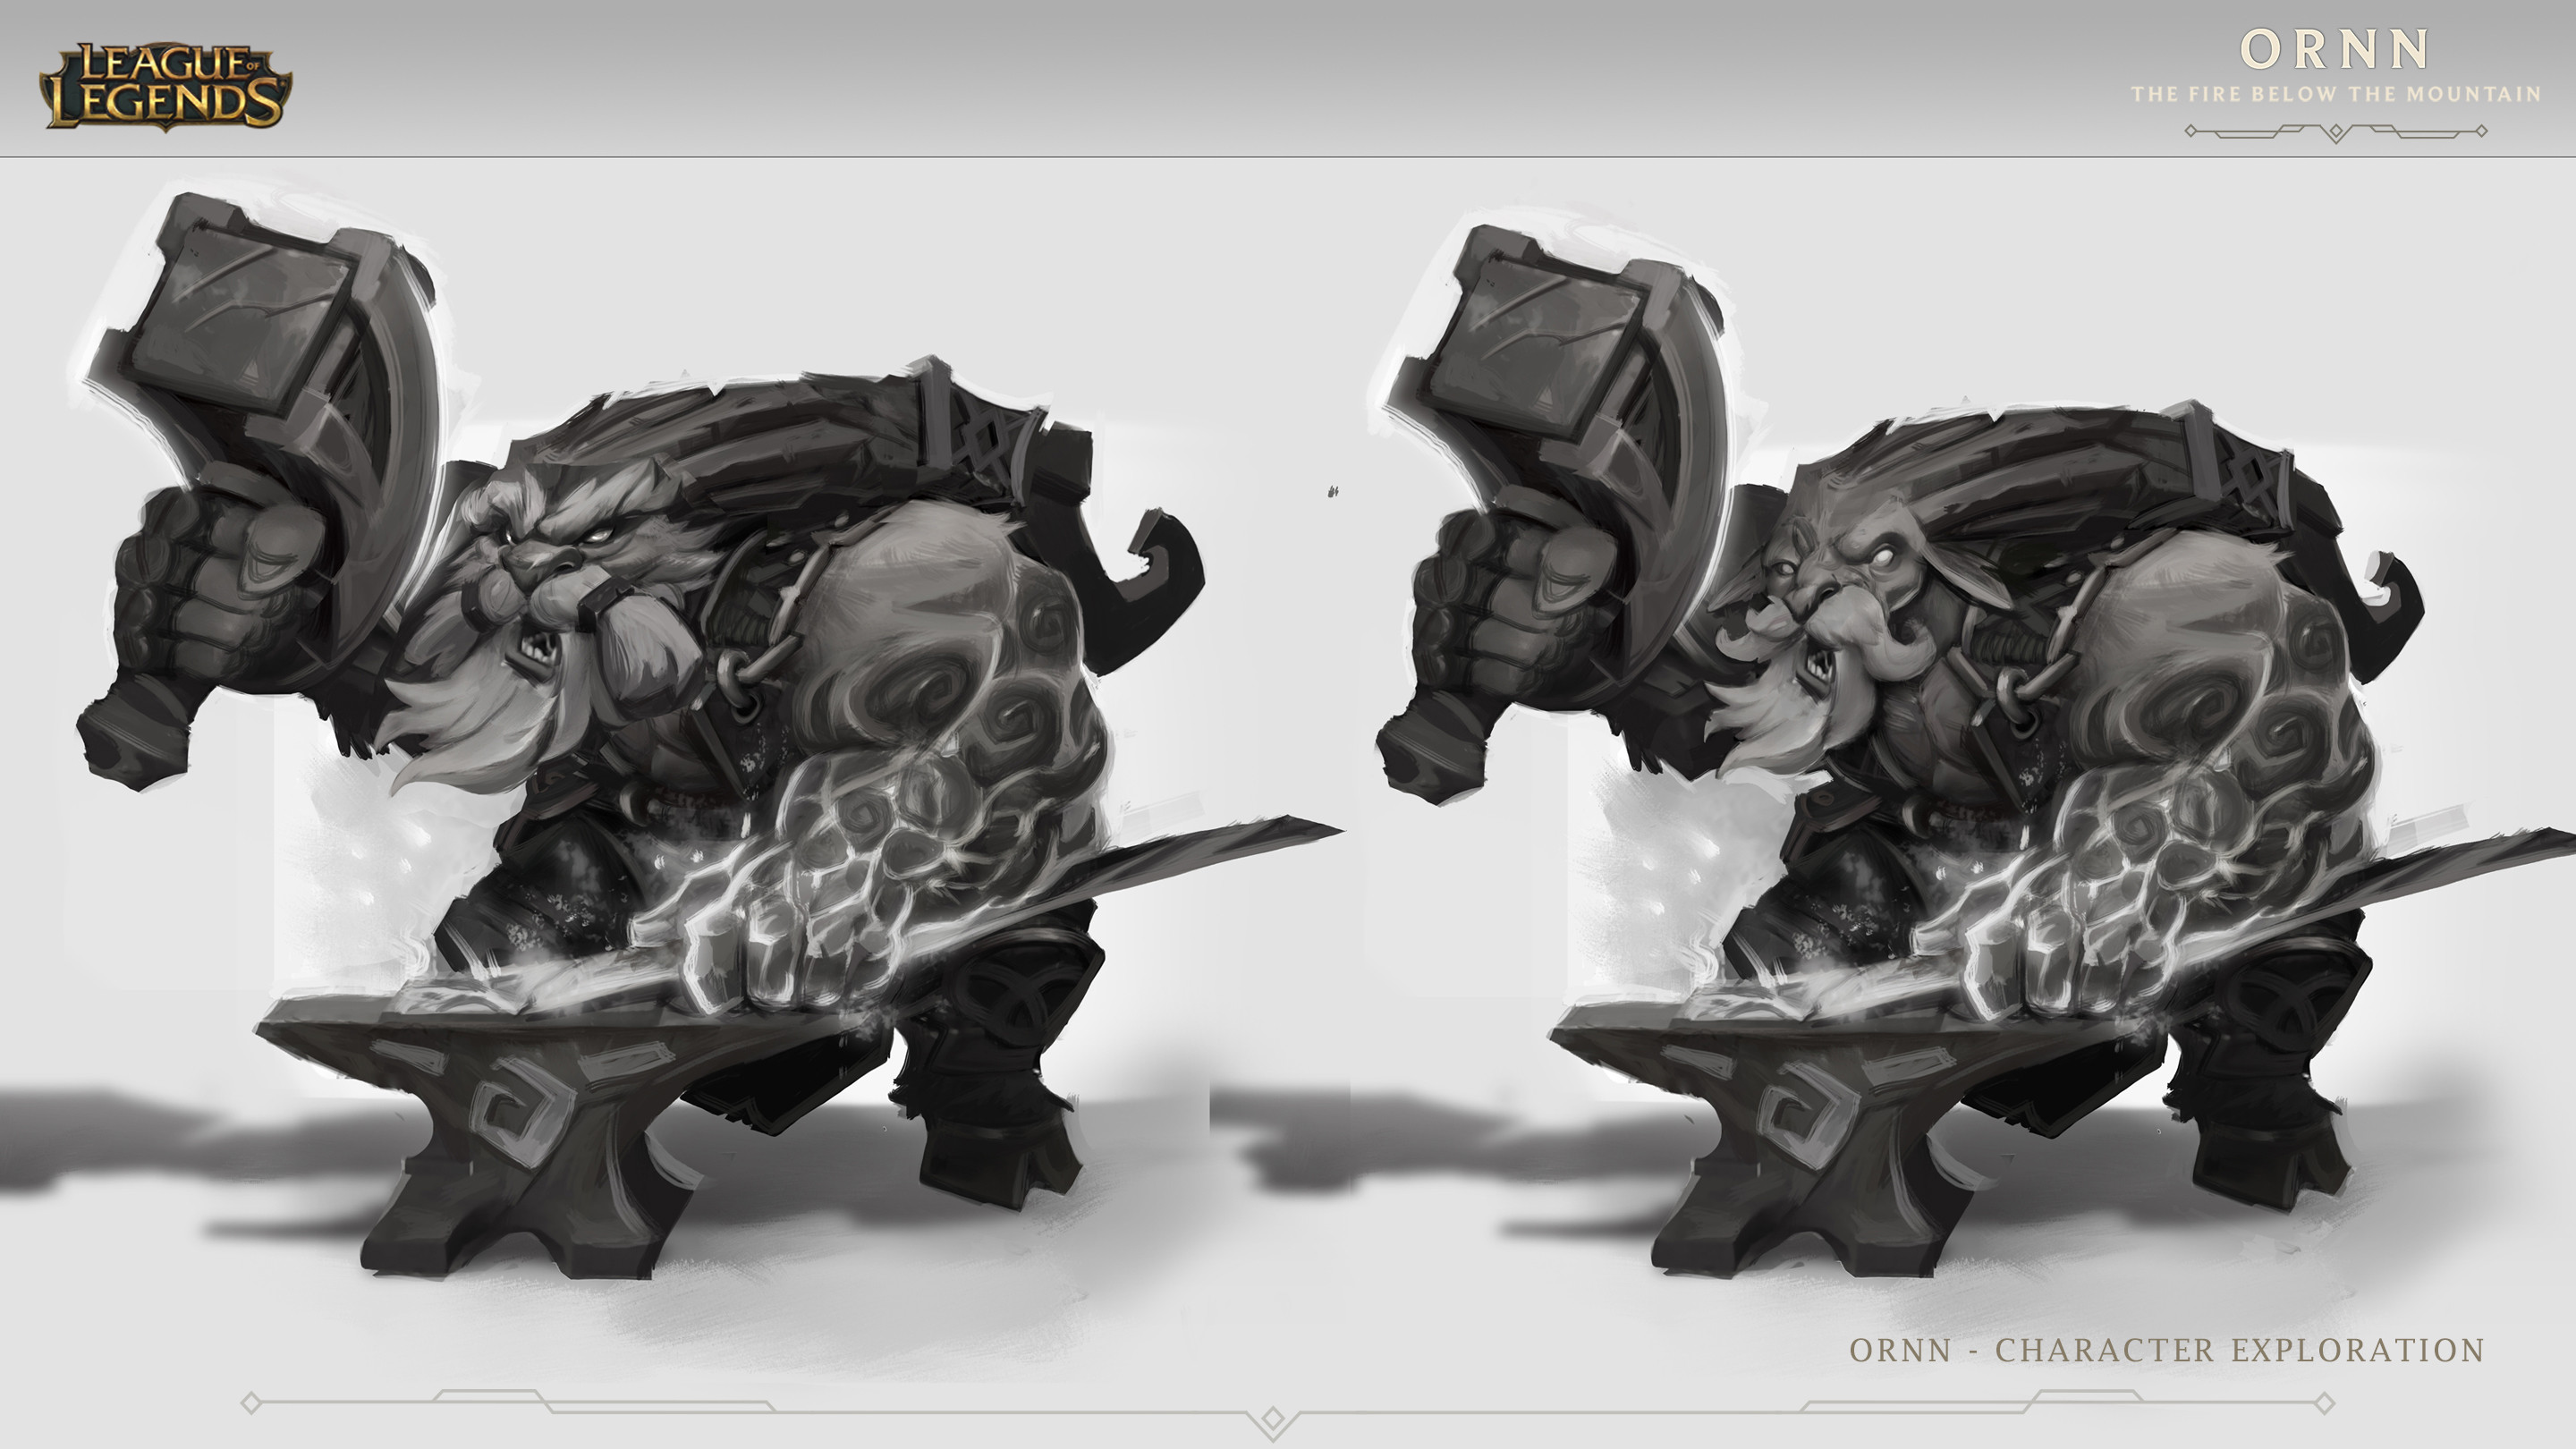 Ornn Character Exploration